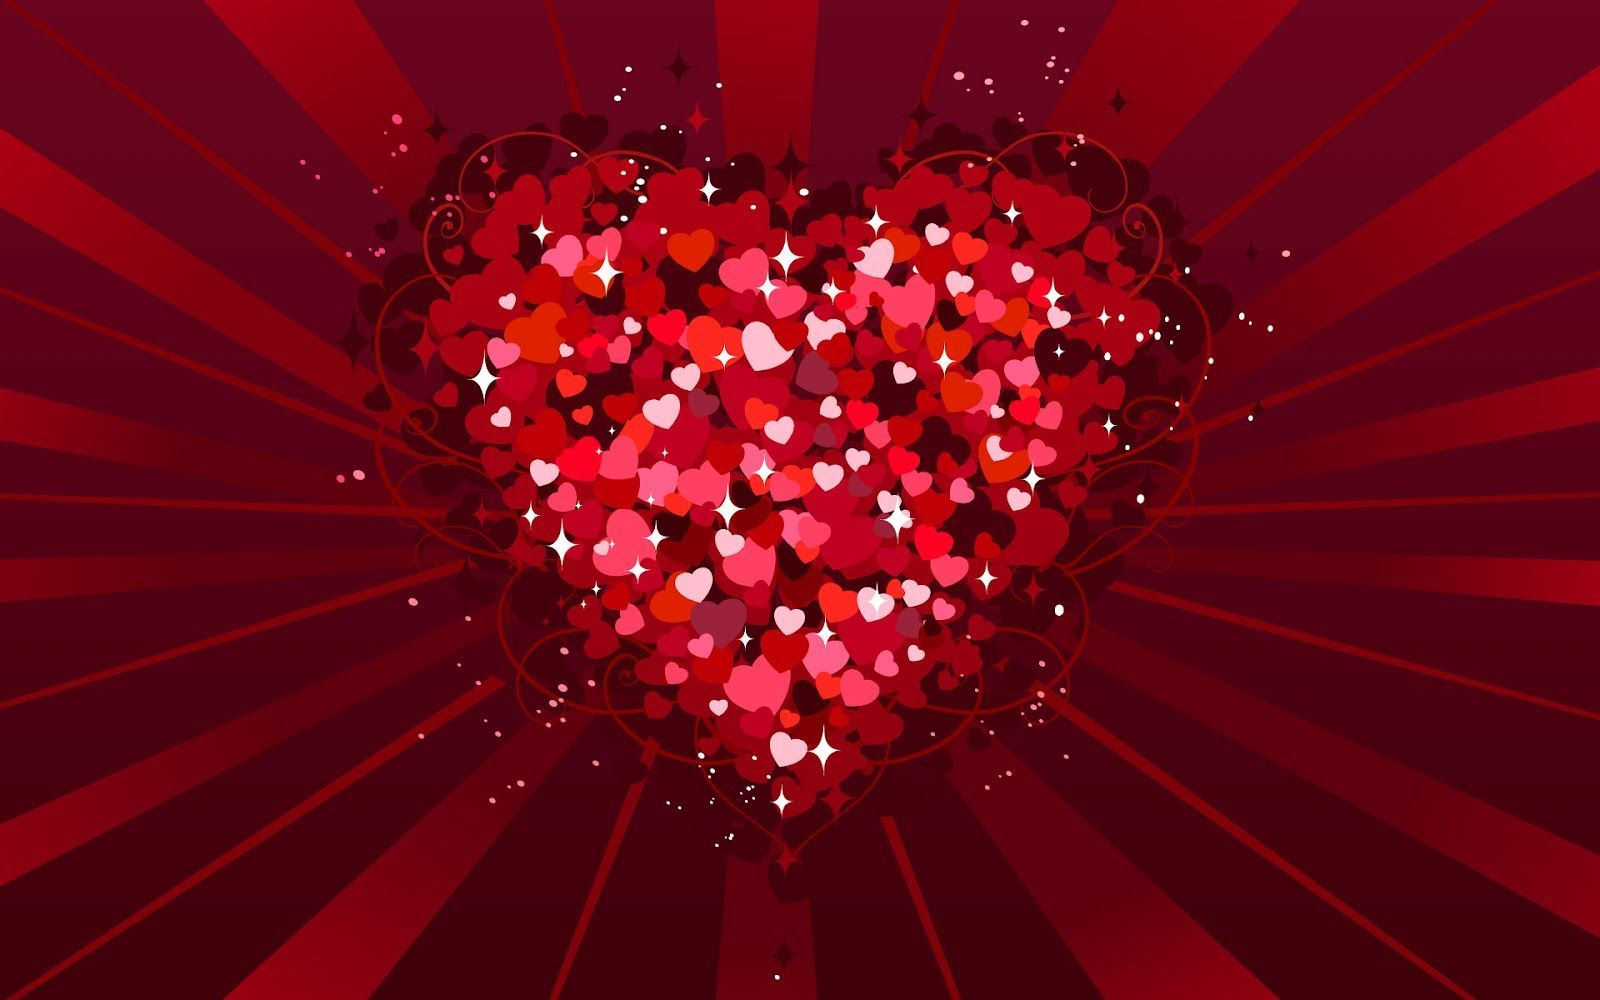 Cute Valentines Day Backgrounds V7372R2jpg   Picseriocom 1600x1000